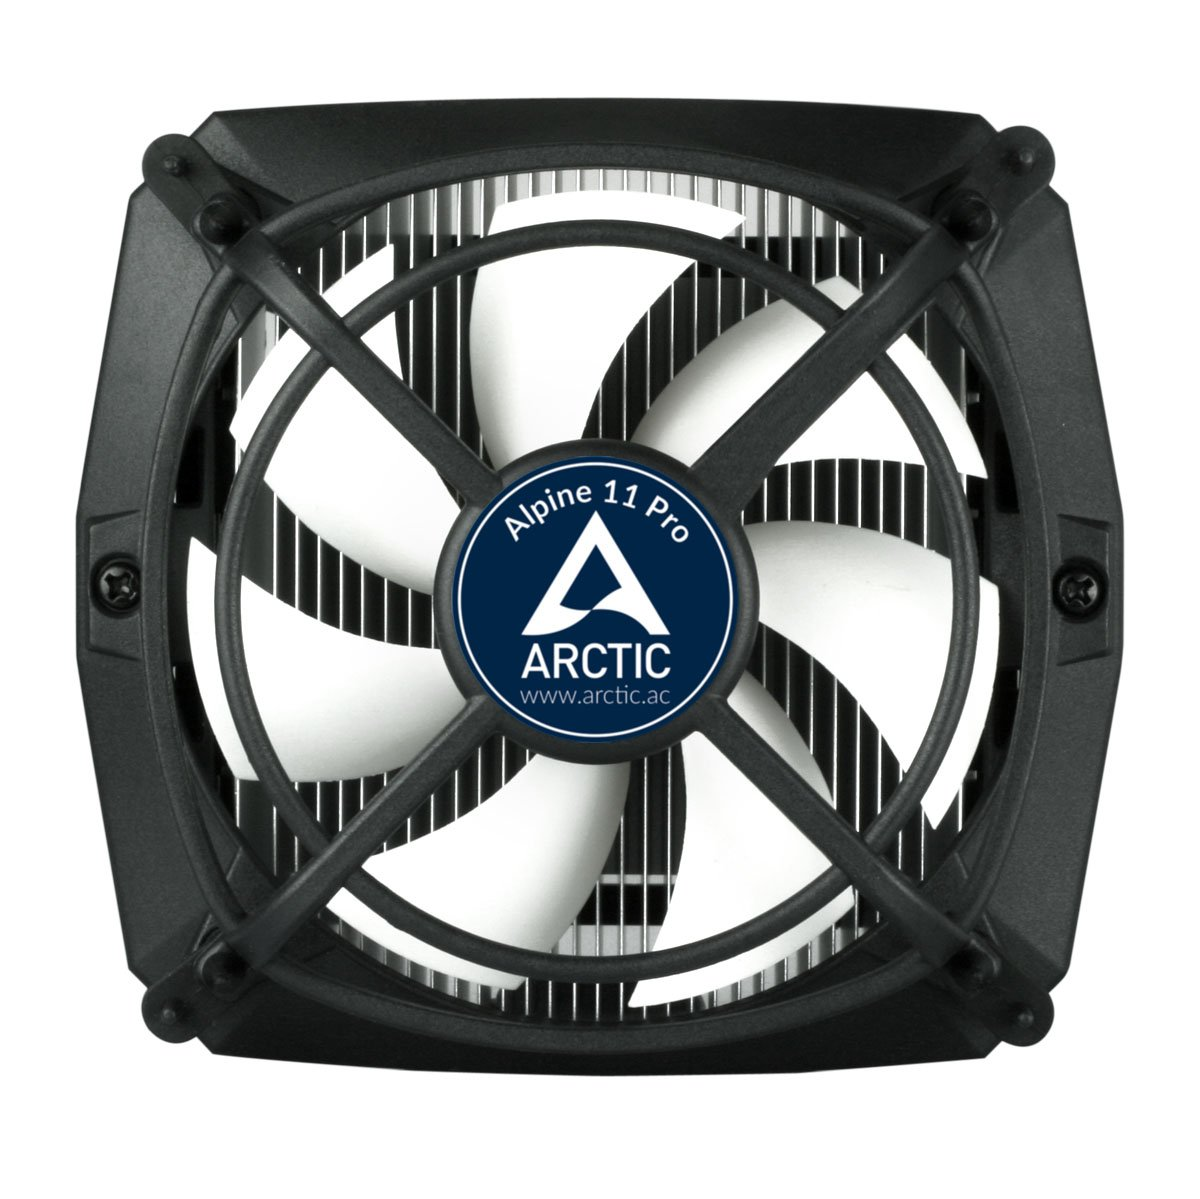 Arctic Alpine 11 Pro 95 Watts Low Noise Cpu Cooler For Intel Circuits Gt Single Transformer Inverterchargerchang L28537 Nextgr Sockets 1150 1155 1156 775 With Patented Fan Holder Anti Vibration